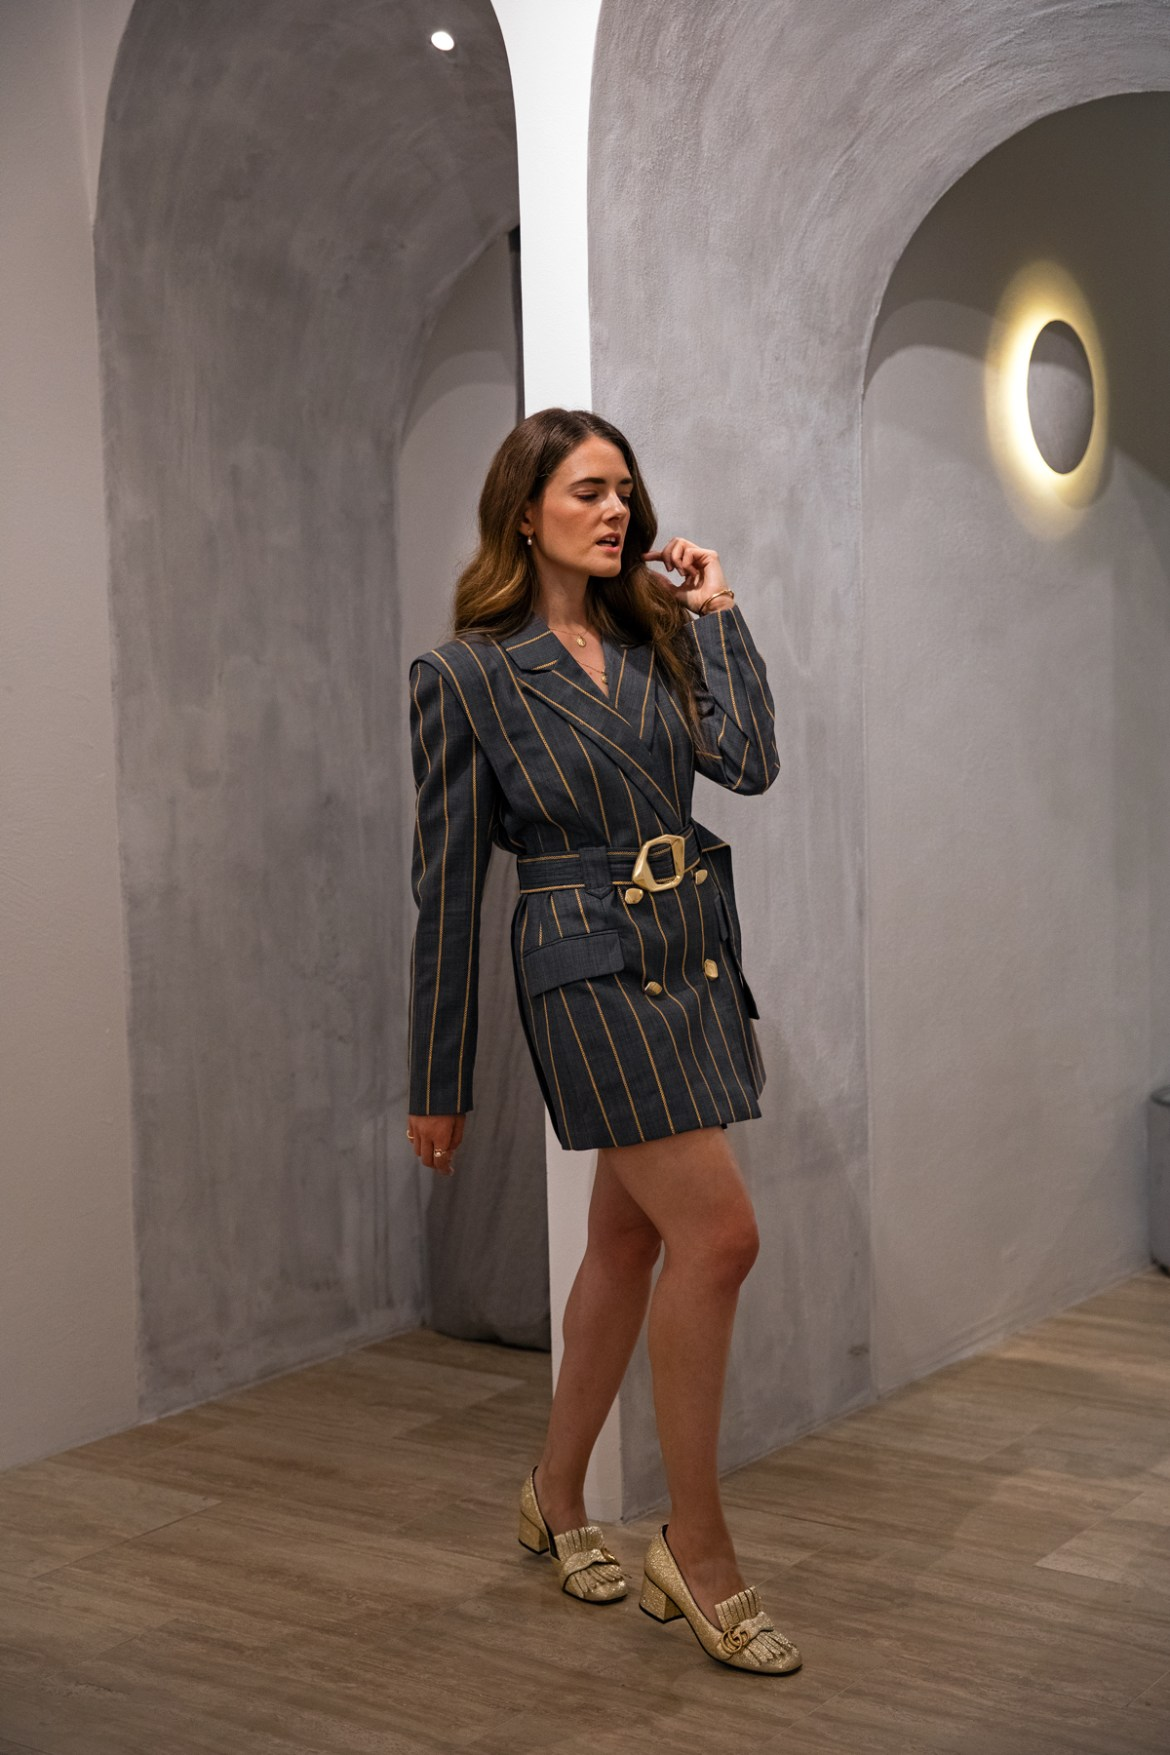 Aje Blazer dress from Autumn 19 collection worn by Inspiring Wit fashion blogger Jenelle with Gold Gucci Marmont Heels